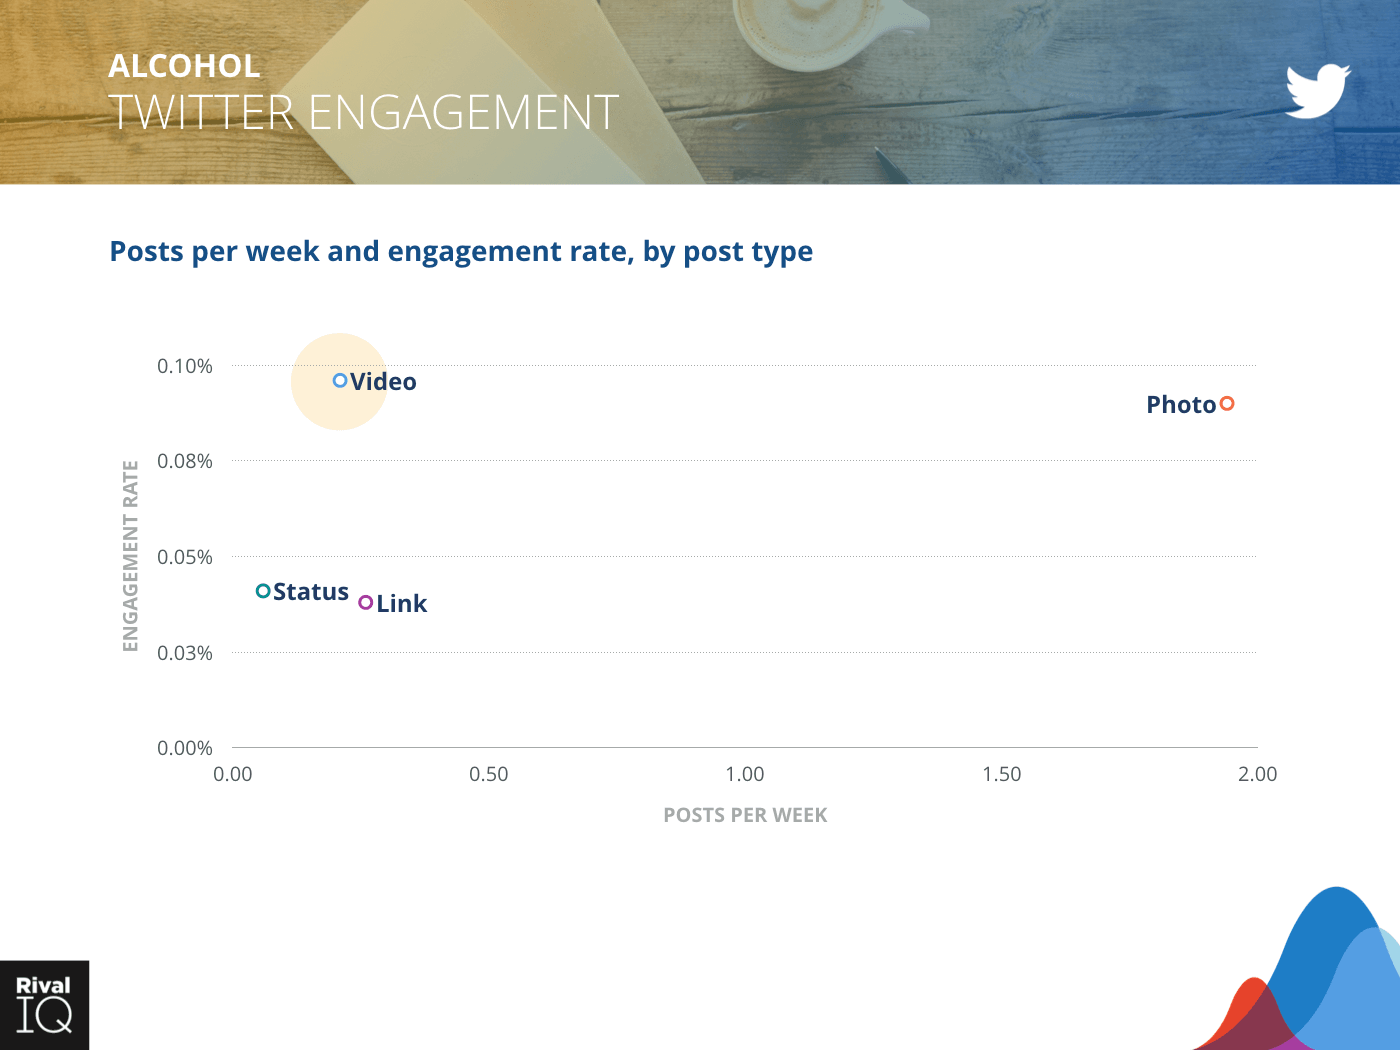 Alcohol Industry: scatter graph, posts per week and engagement rate on Twitter by post type